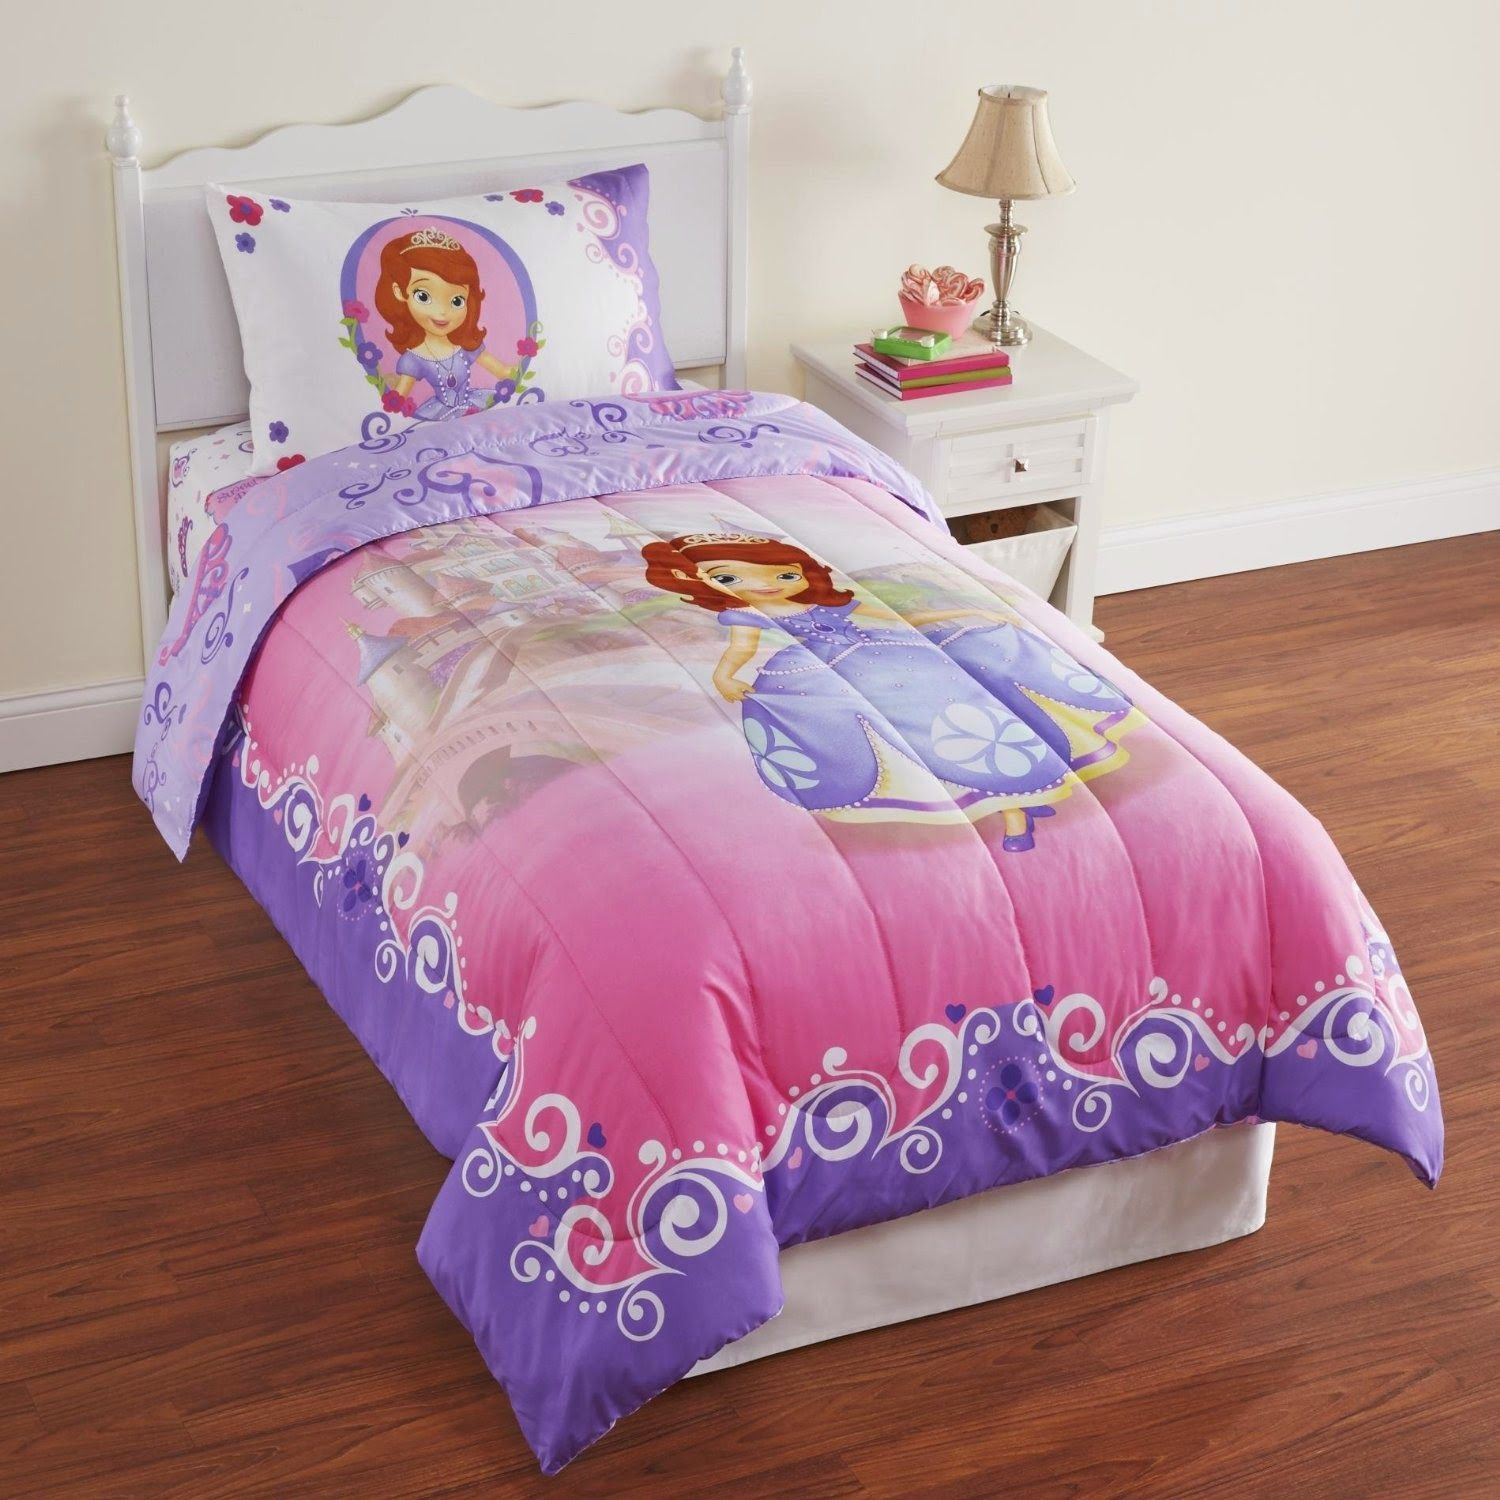 Bedroom Decor Ideas and Designs Top Eight Princess Sofia the 1st